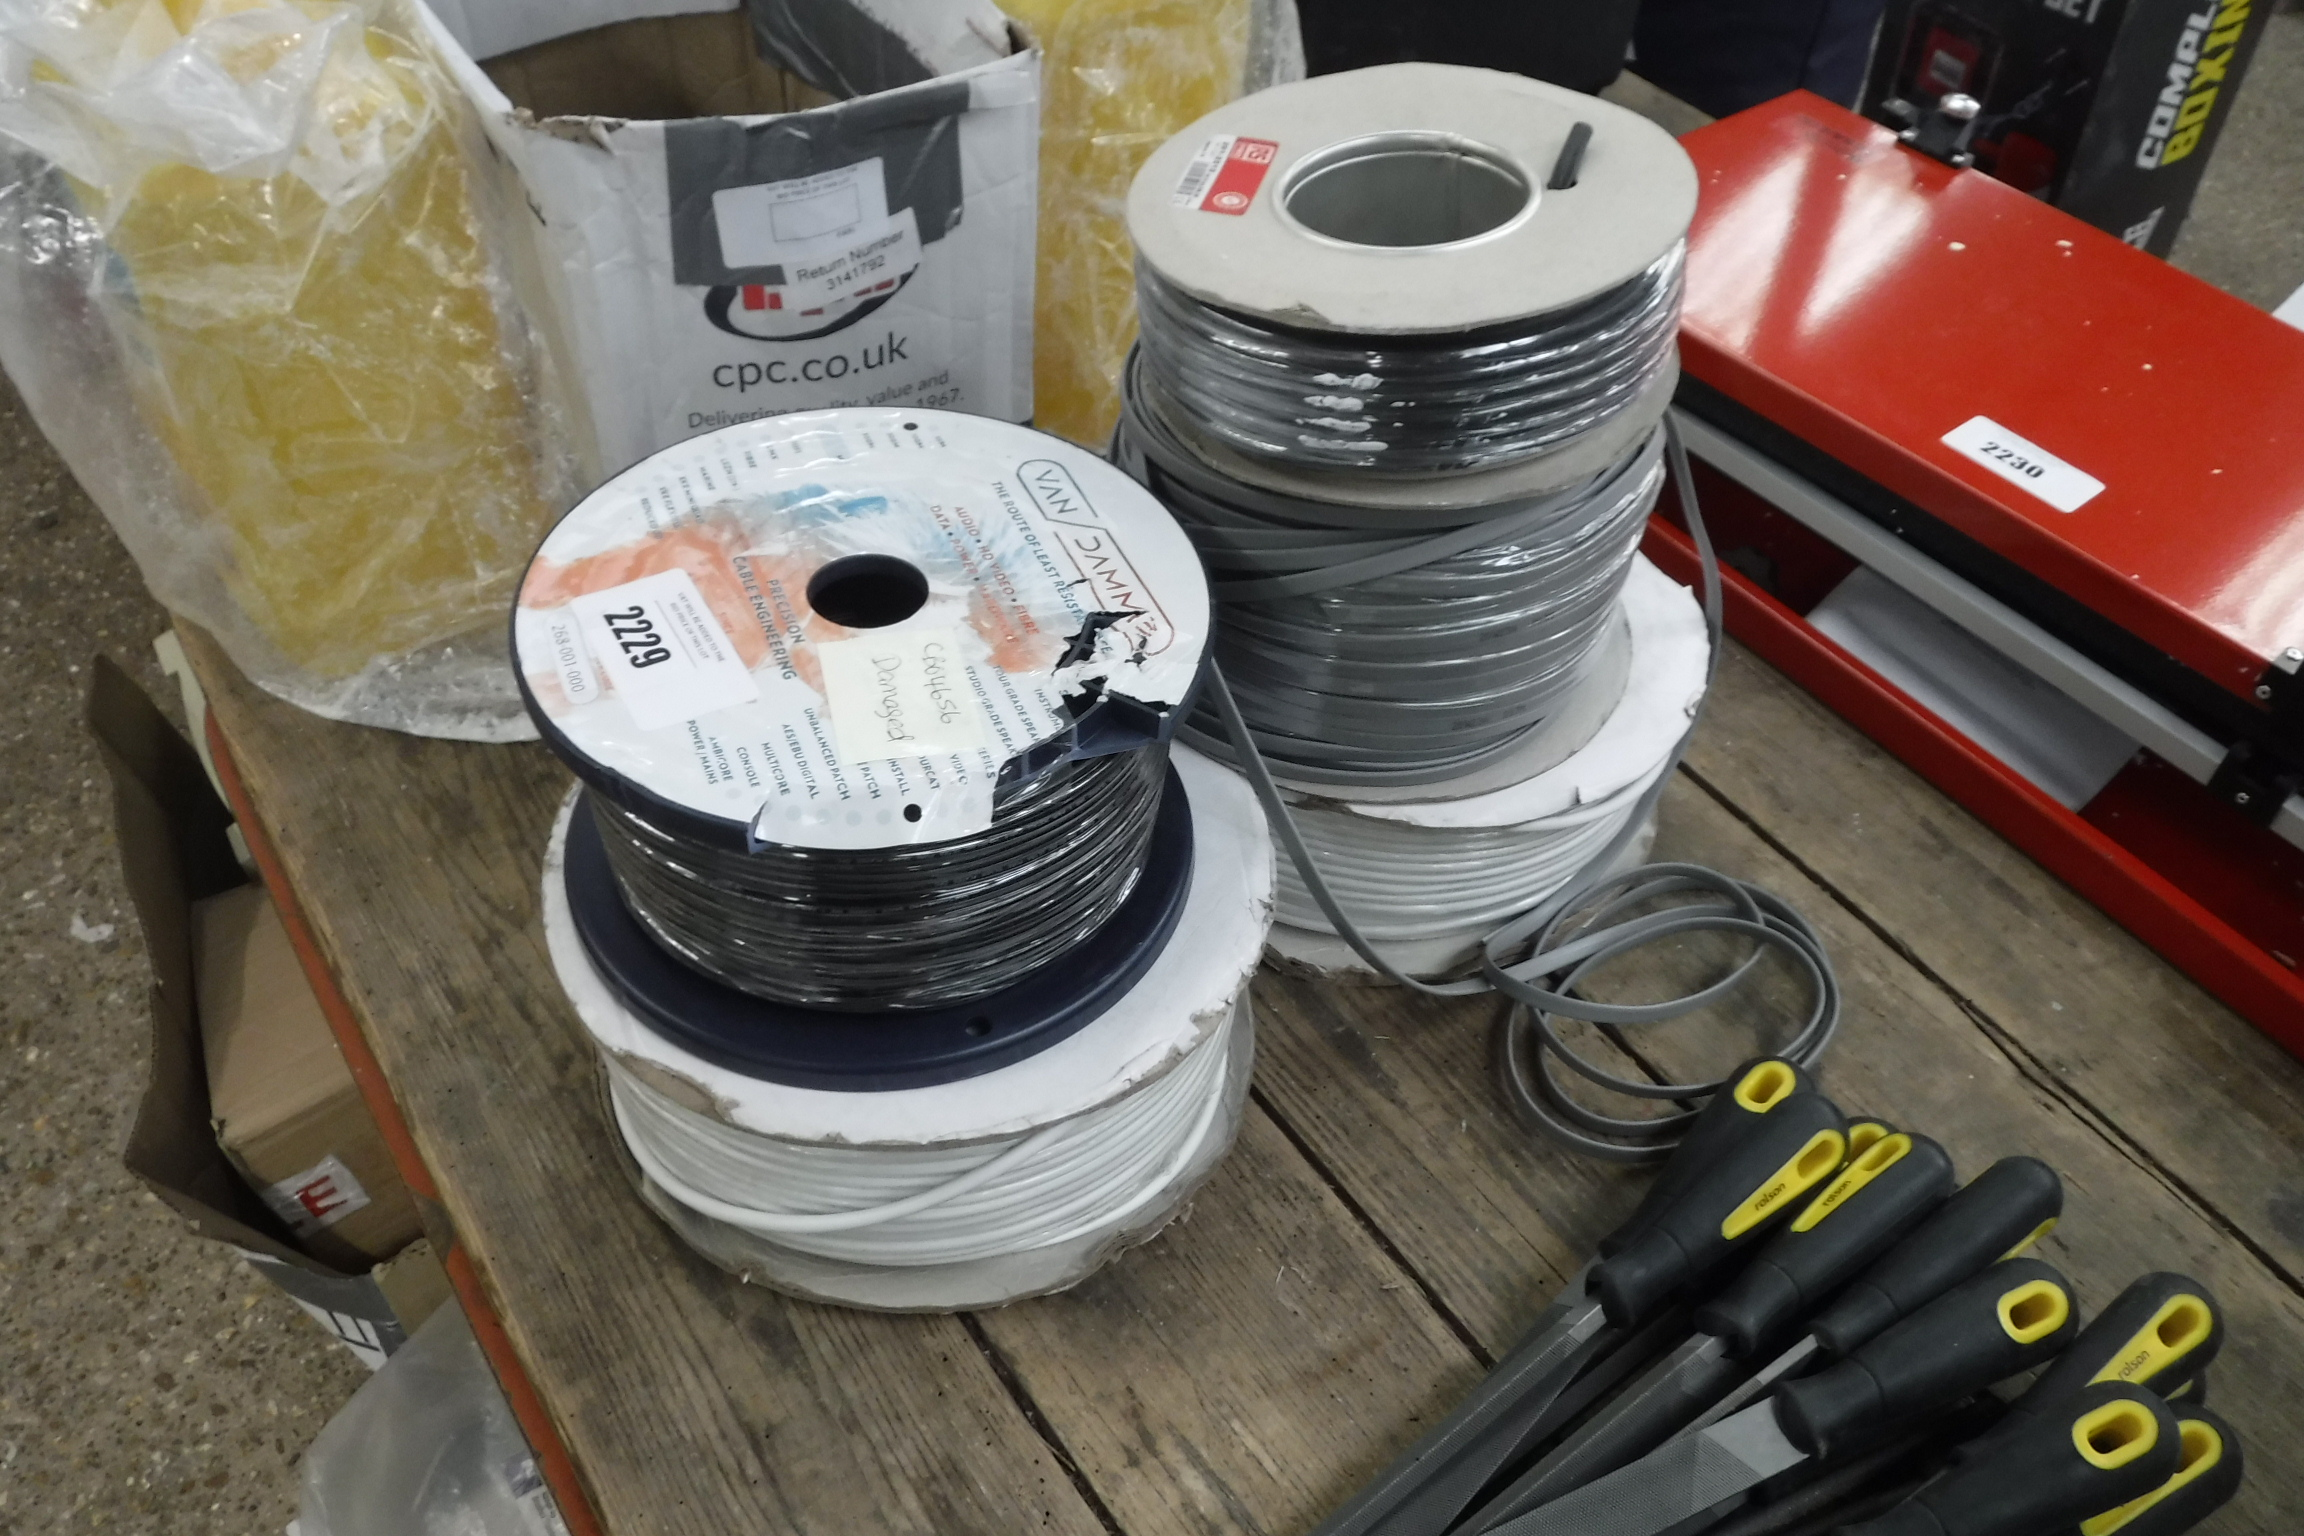 Small quantity of various electrical and audio cable